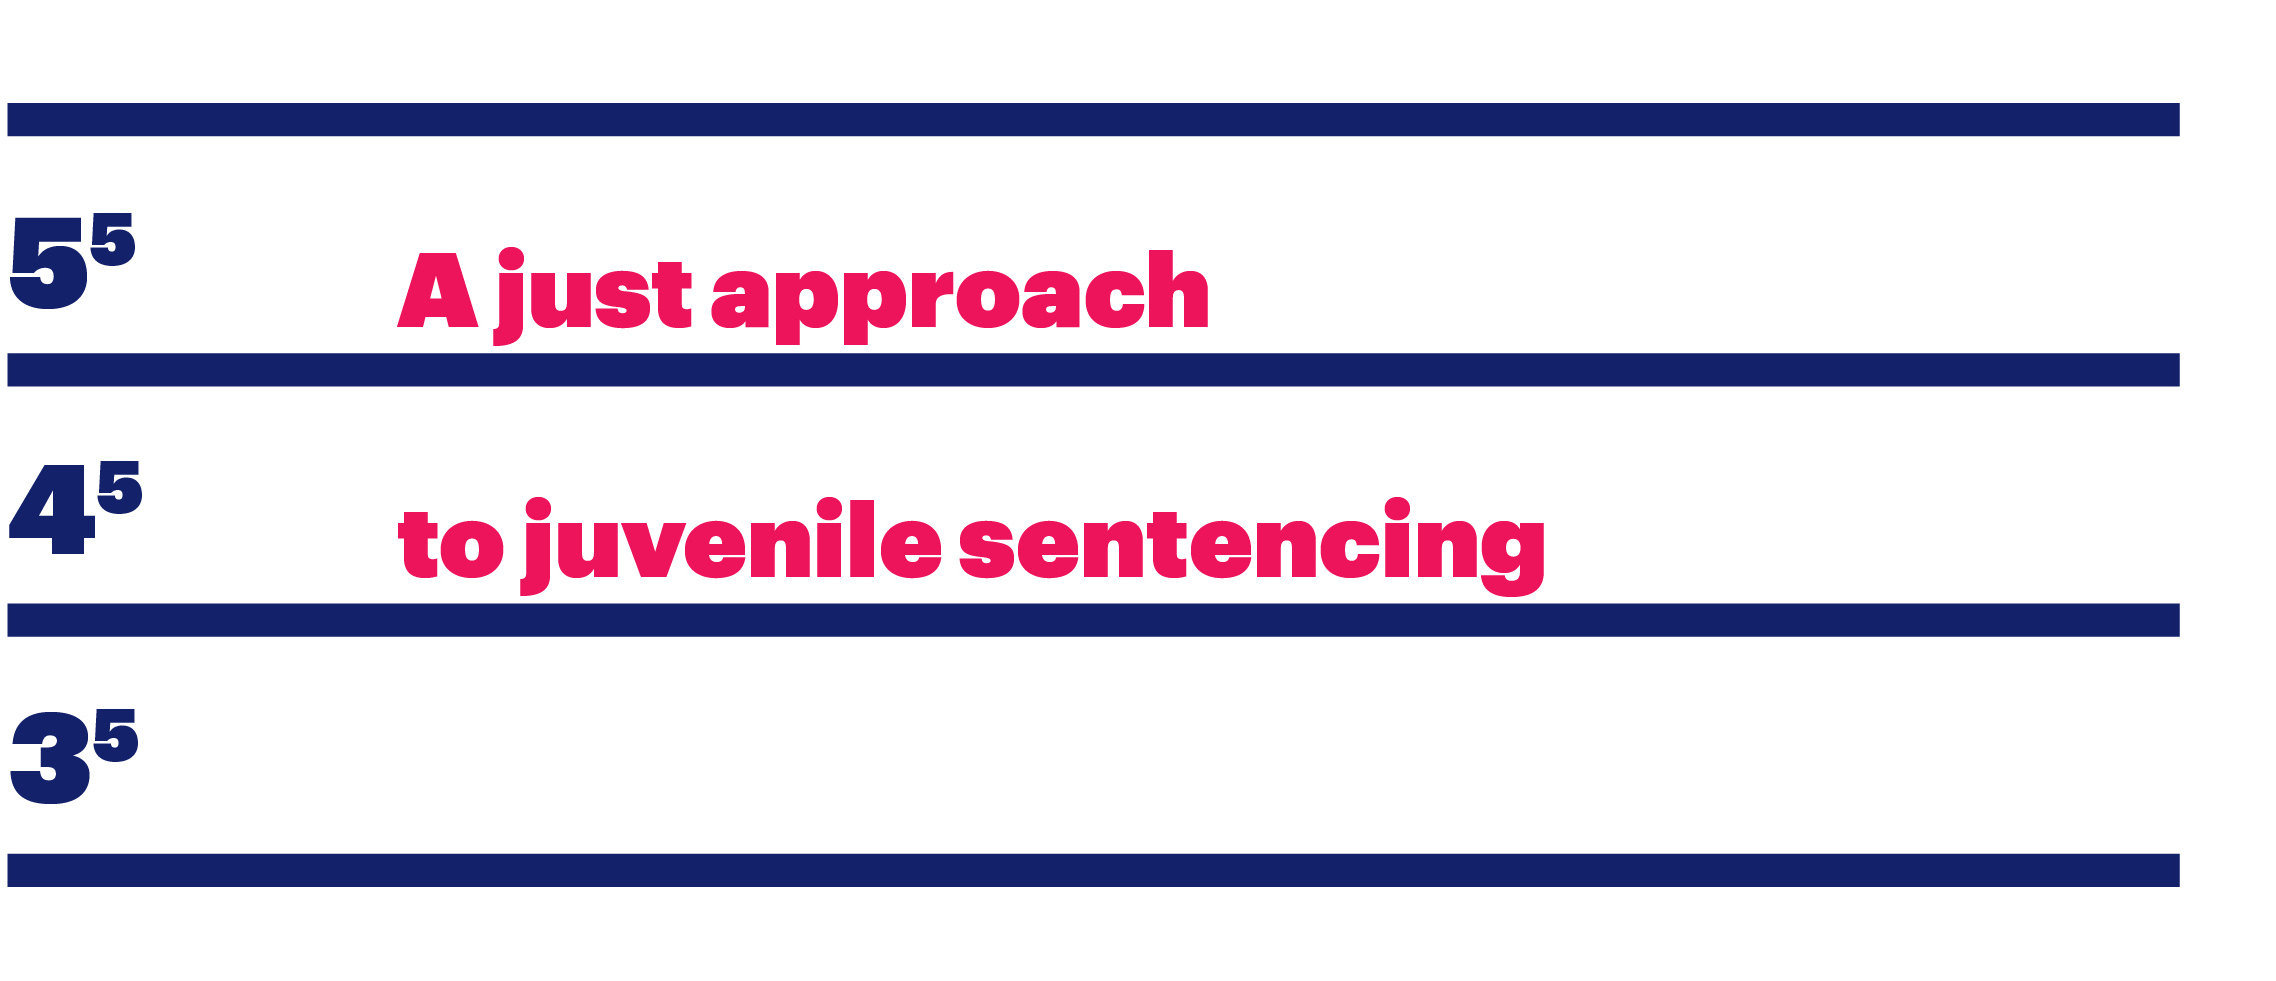 Section title: A just approach to juvenile sentencing